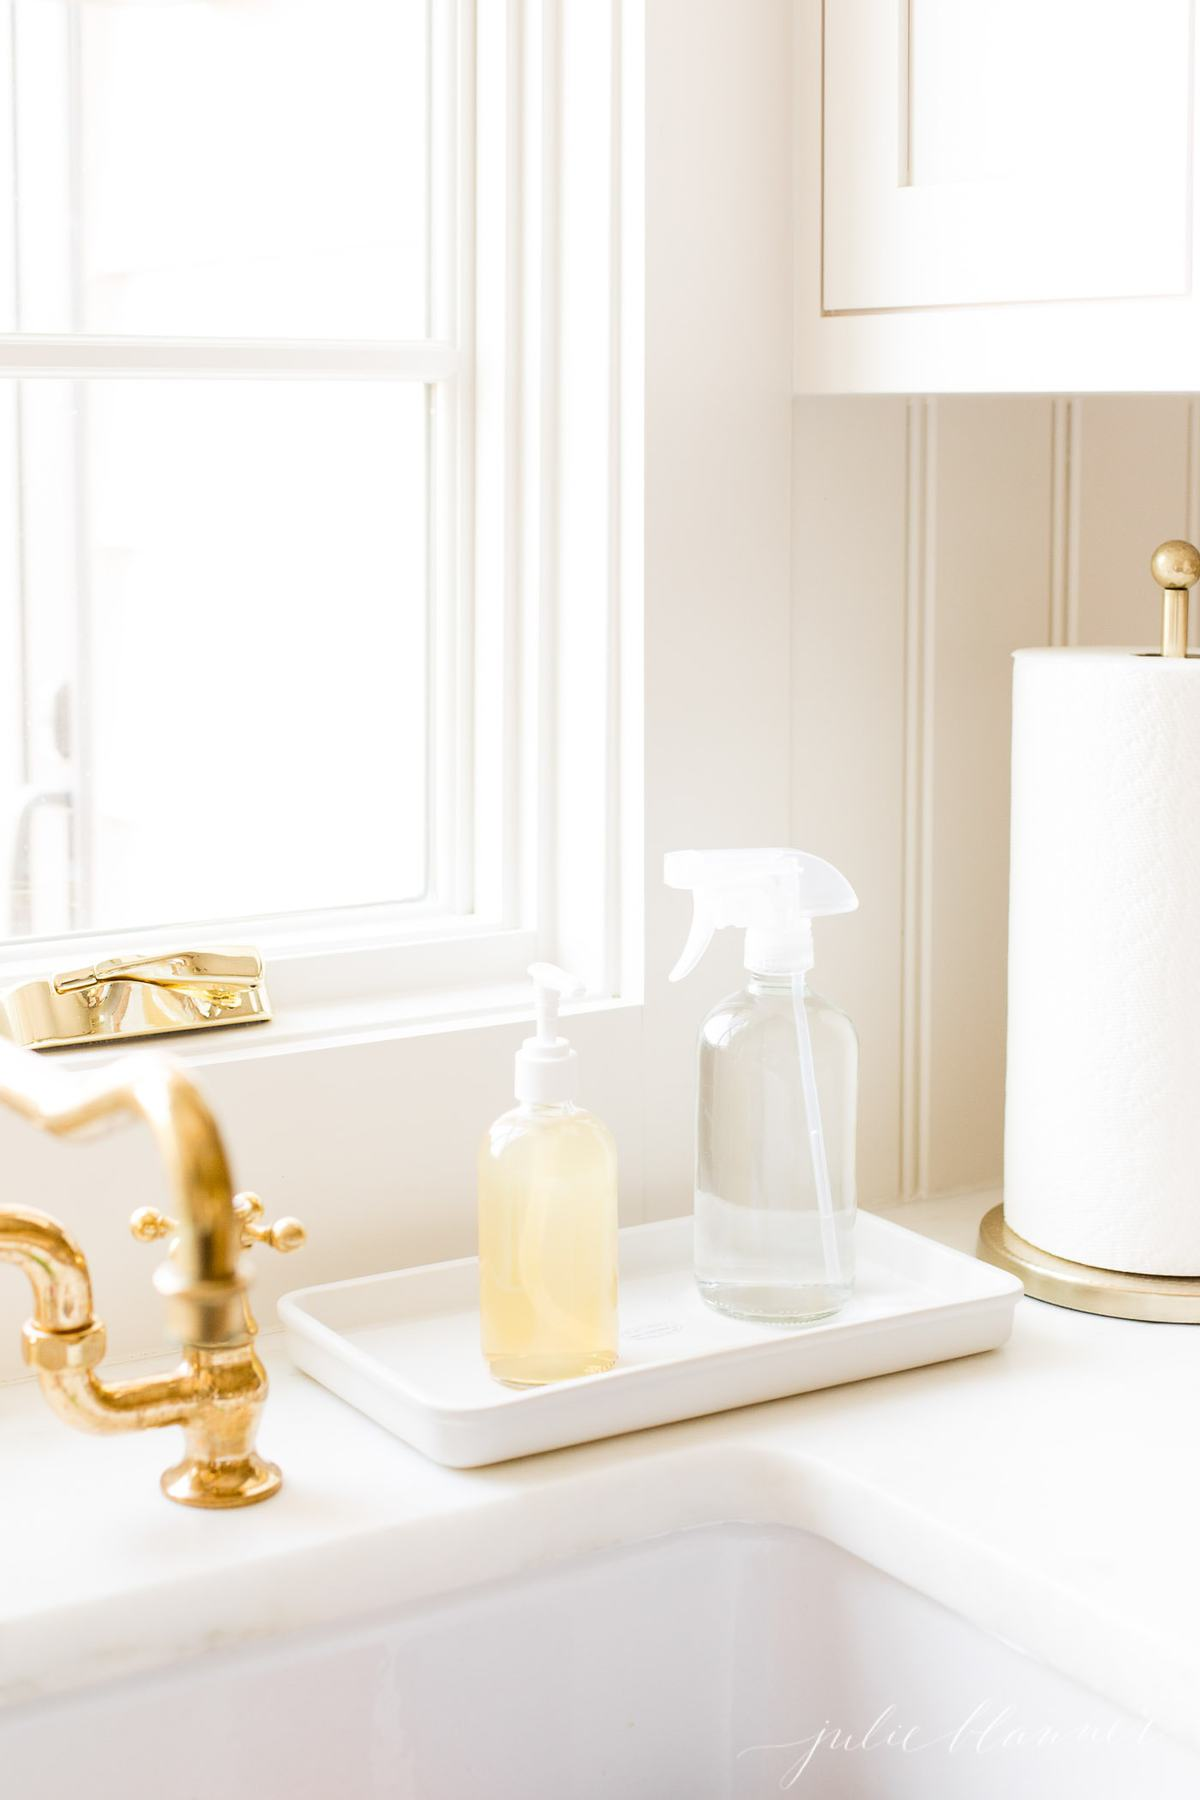 Kitchen Counter Organization soap and cleaning spray on tray next to paper towels